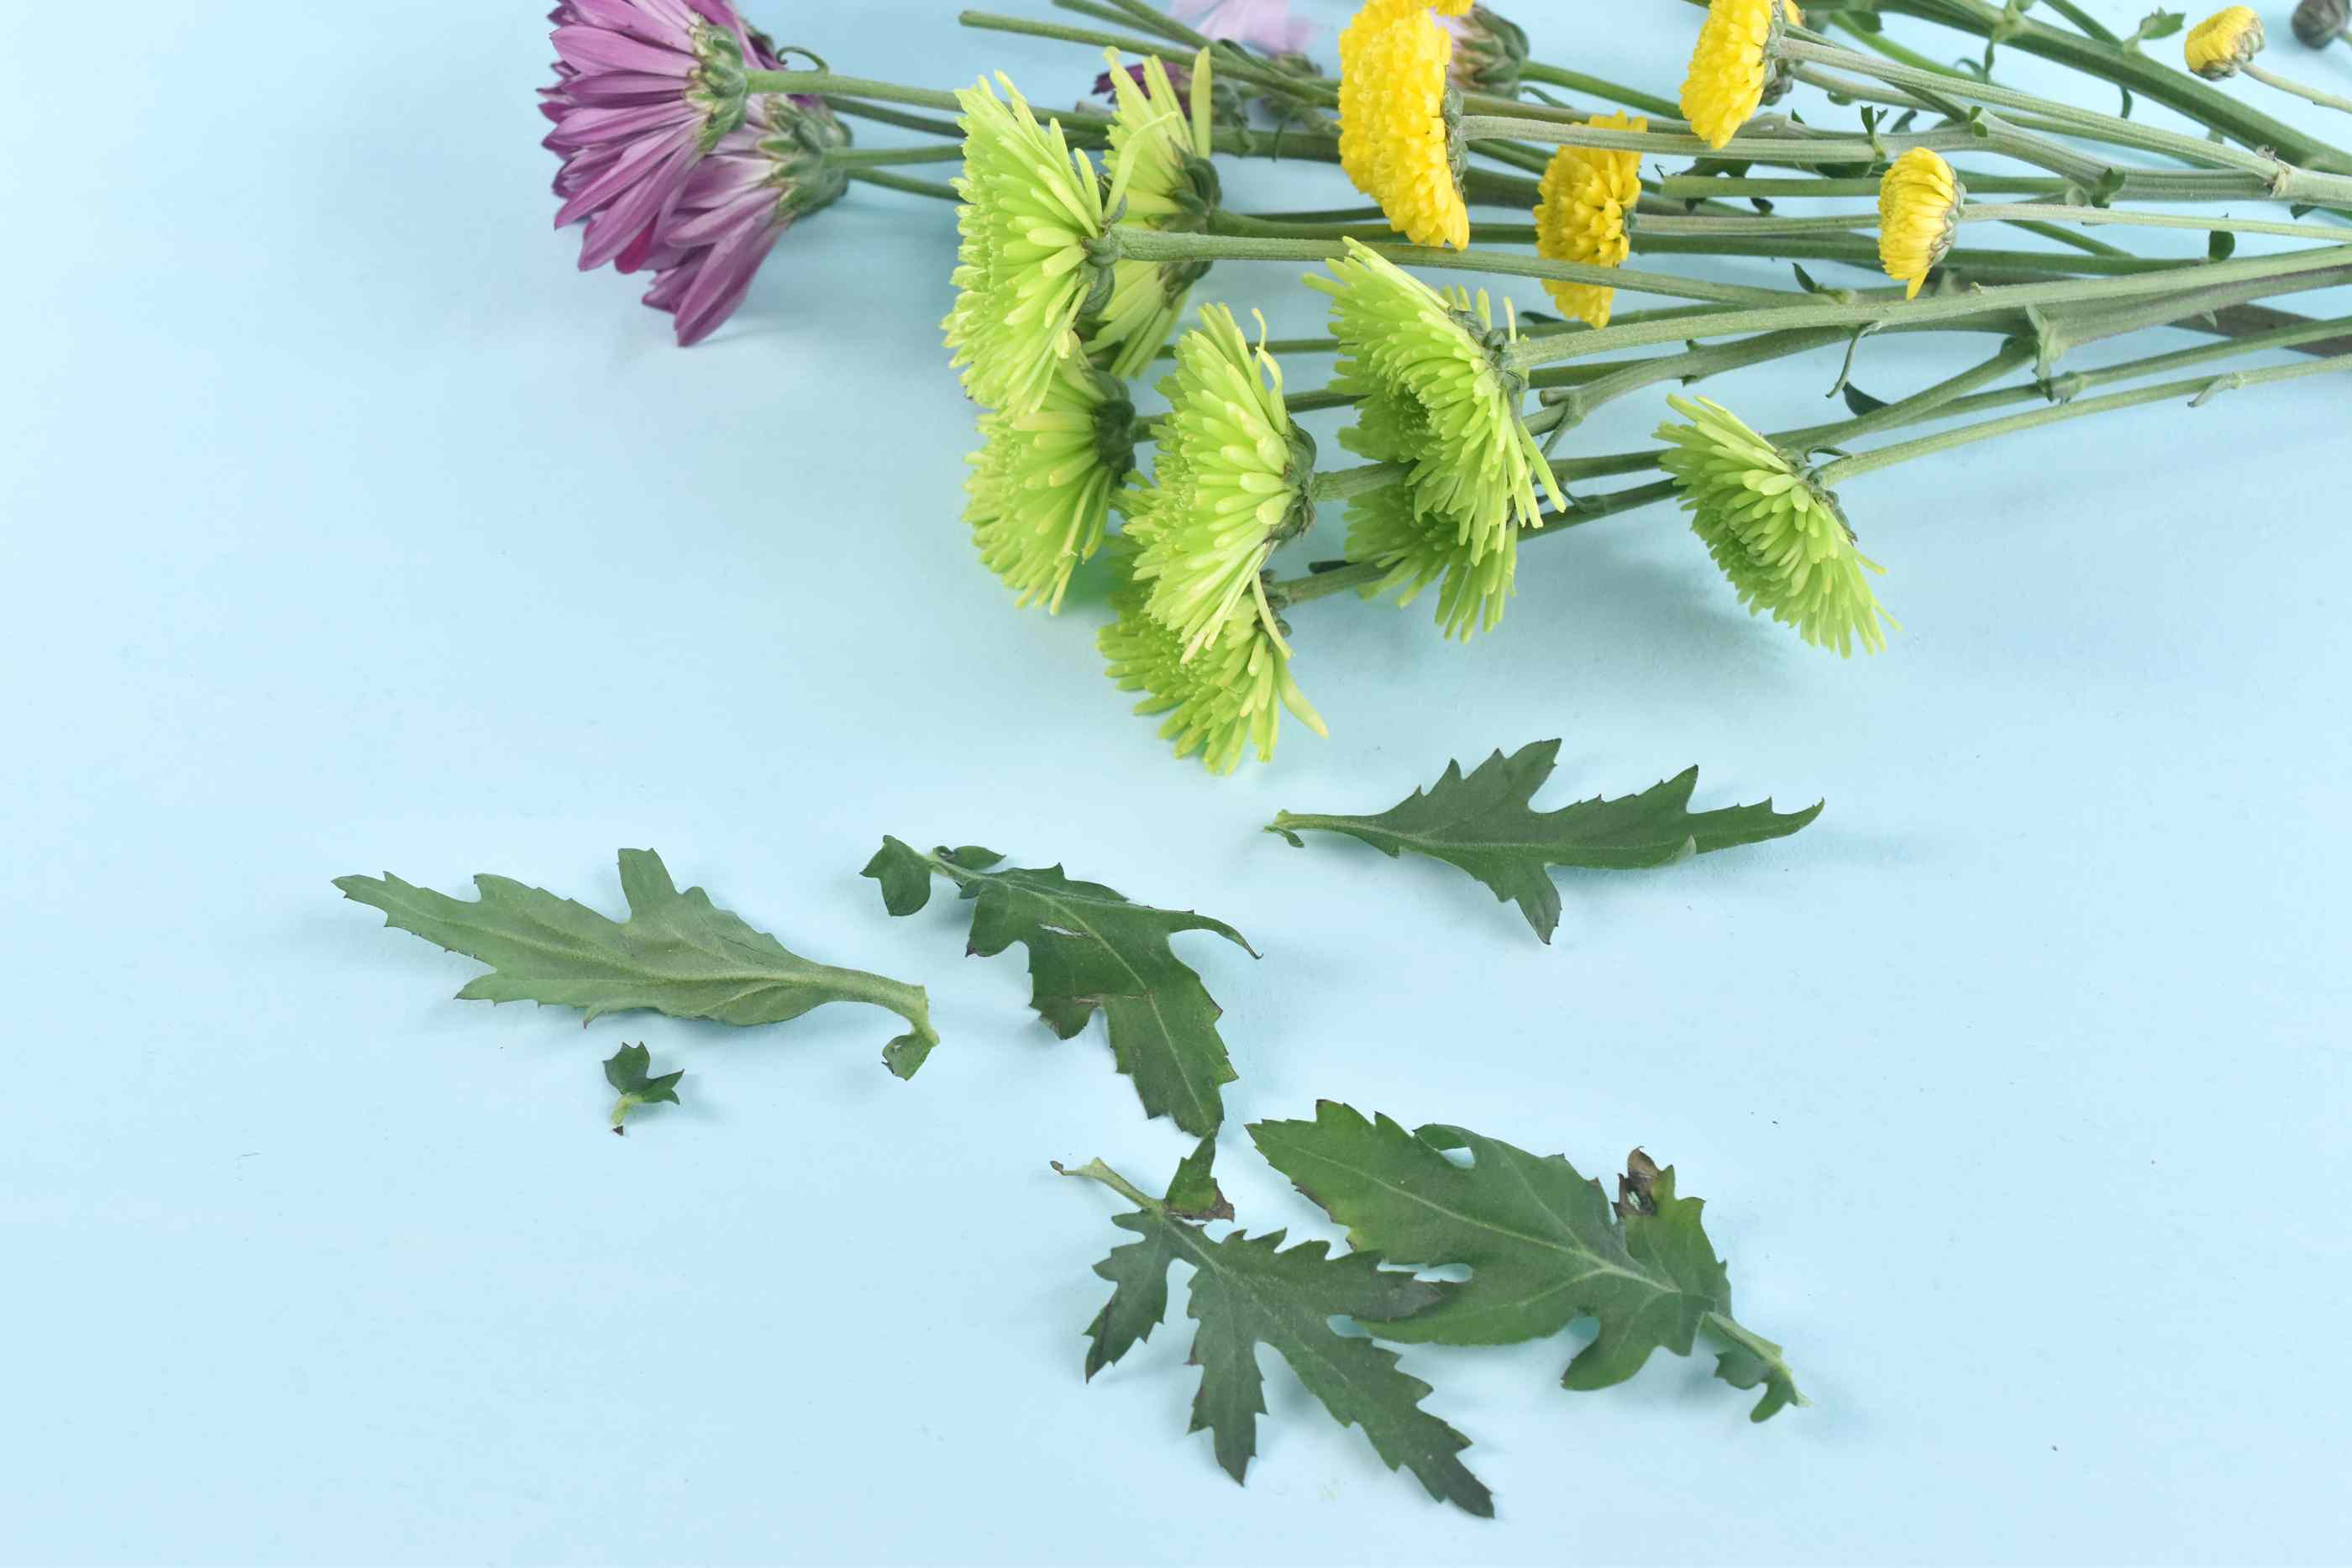 Remove Leaves From Flower Stems